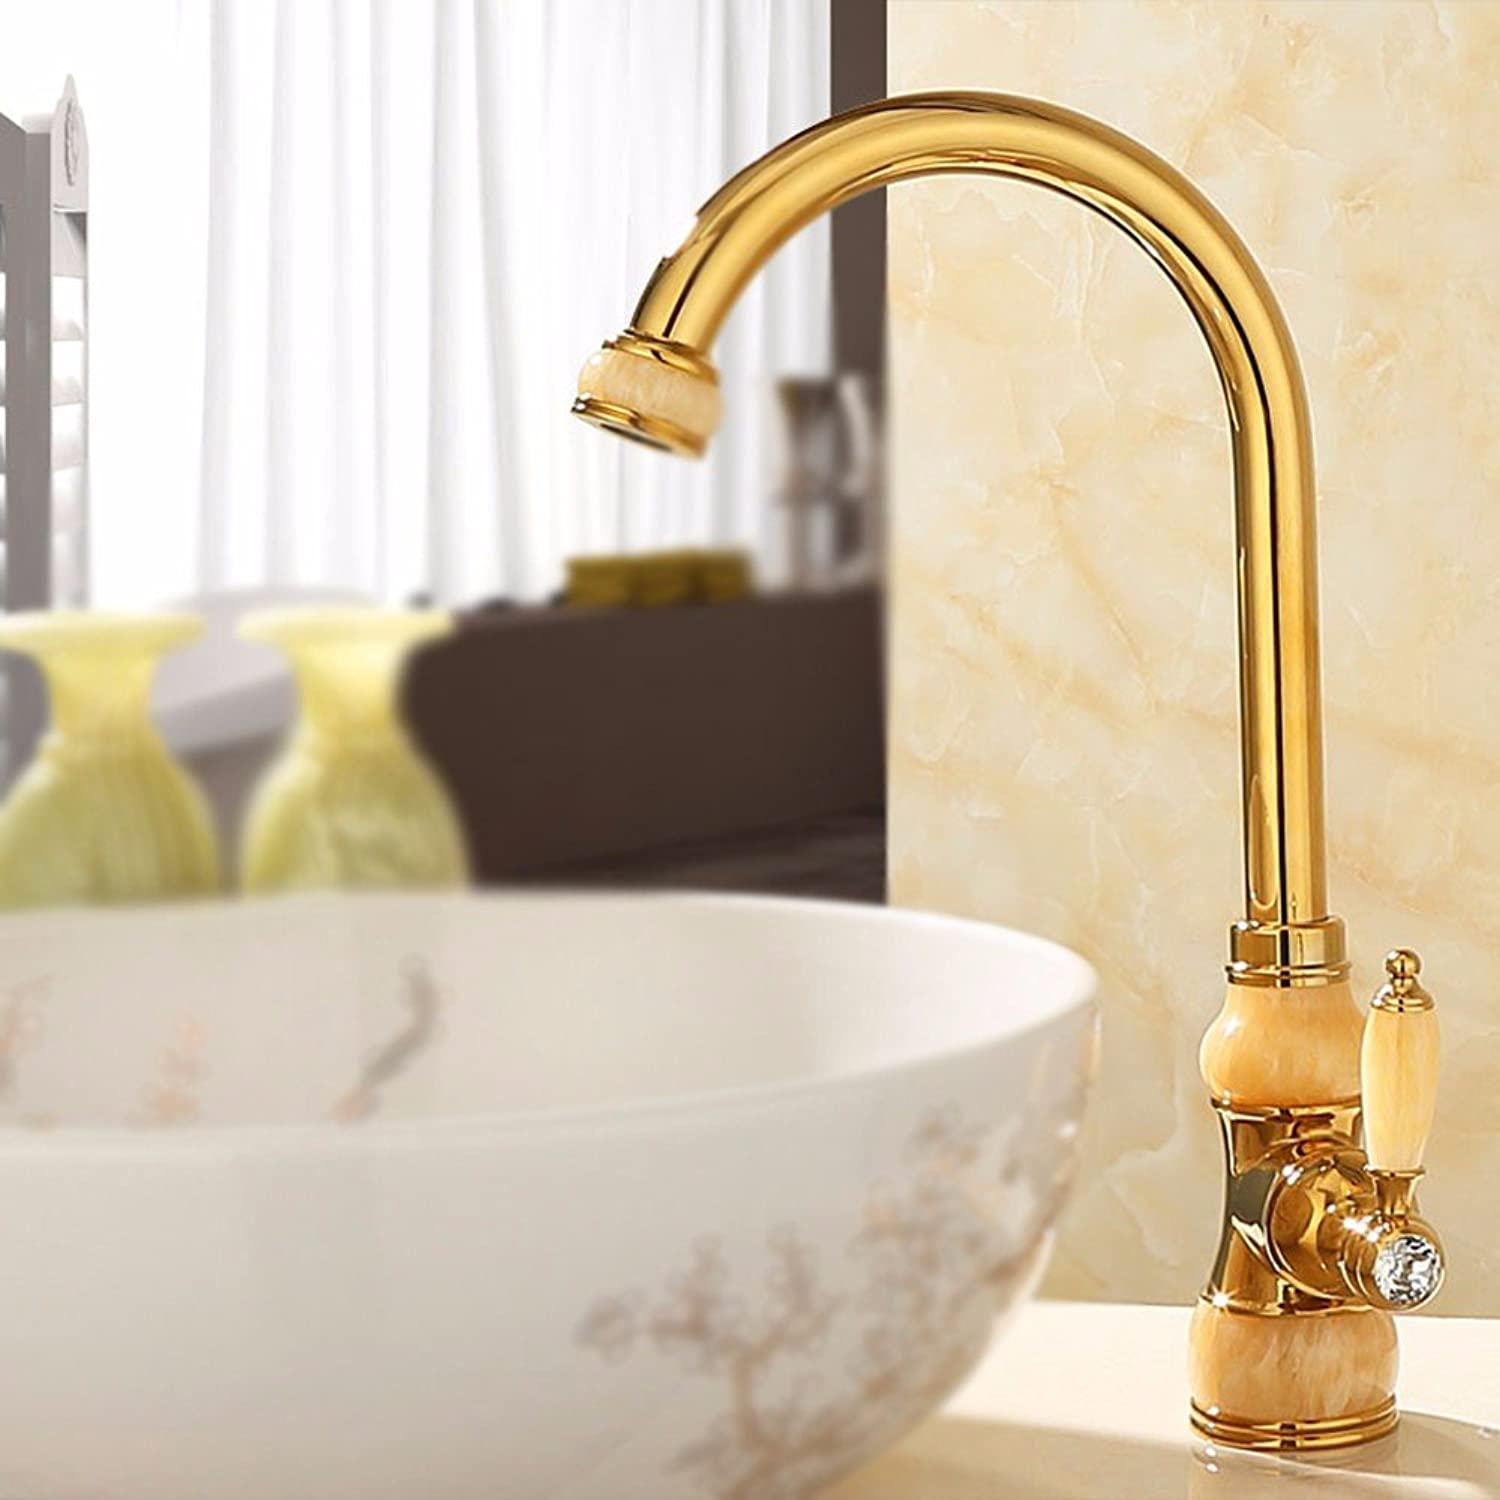 Lpophy Bathroom Sink Mixer Taps Faucet Bath Waterfall Cold and Hot Water Tap for Washroom Bathroom and Kitchen Copper Hot and Cold redatable Single Handle Single Hole C